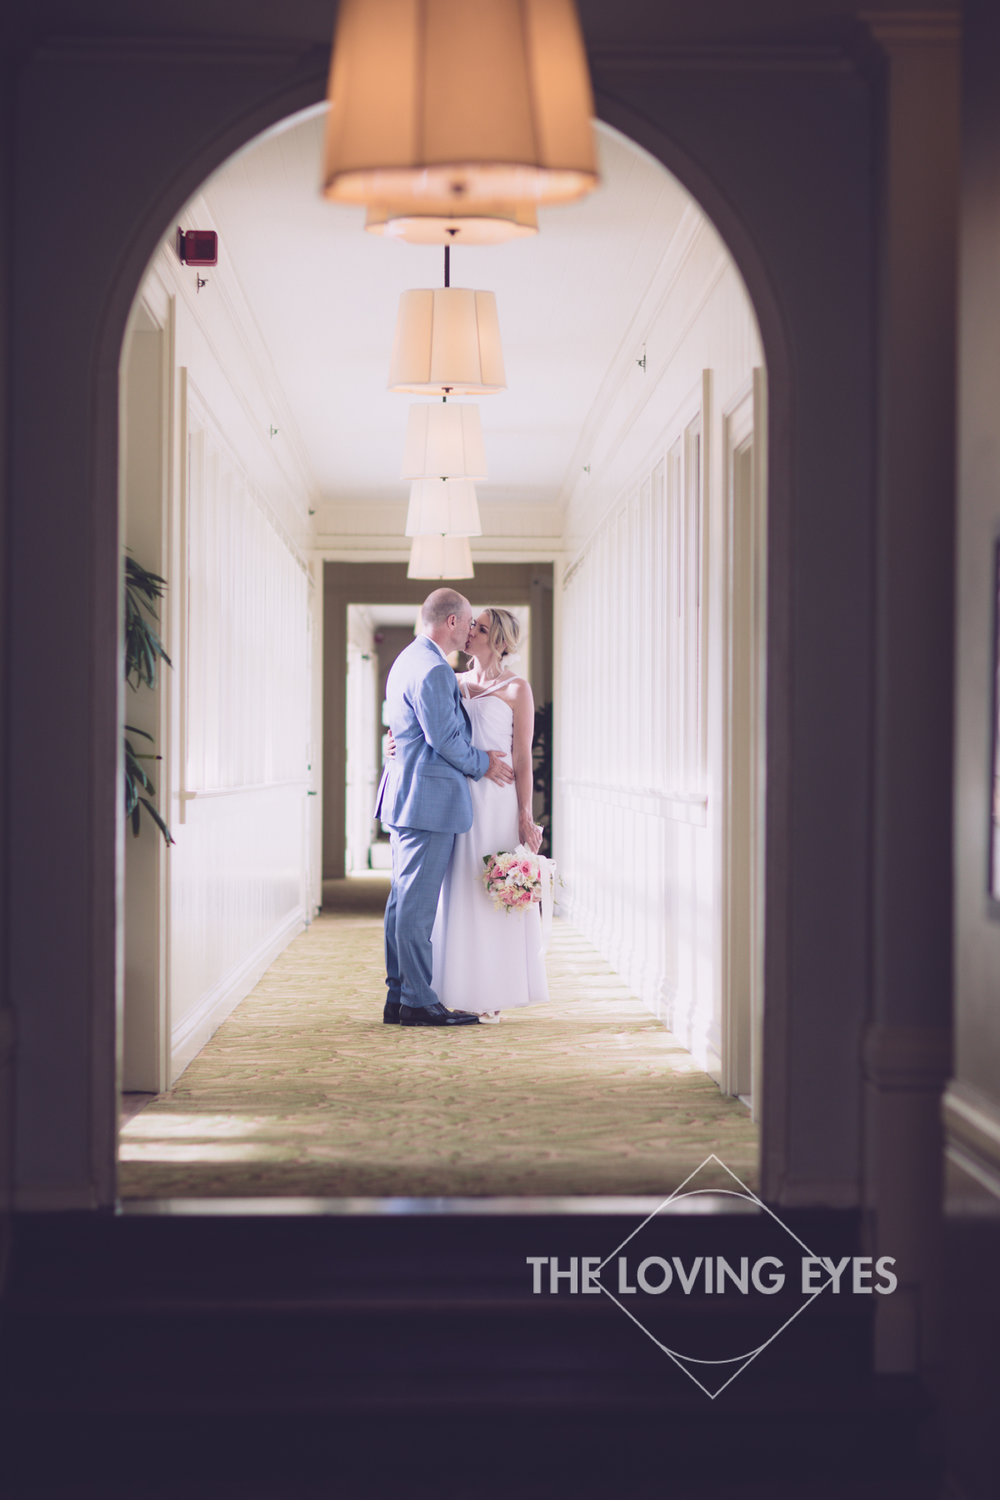 Bride and groom on their wedding day at the Moana Surfrider in Waikiki